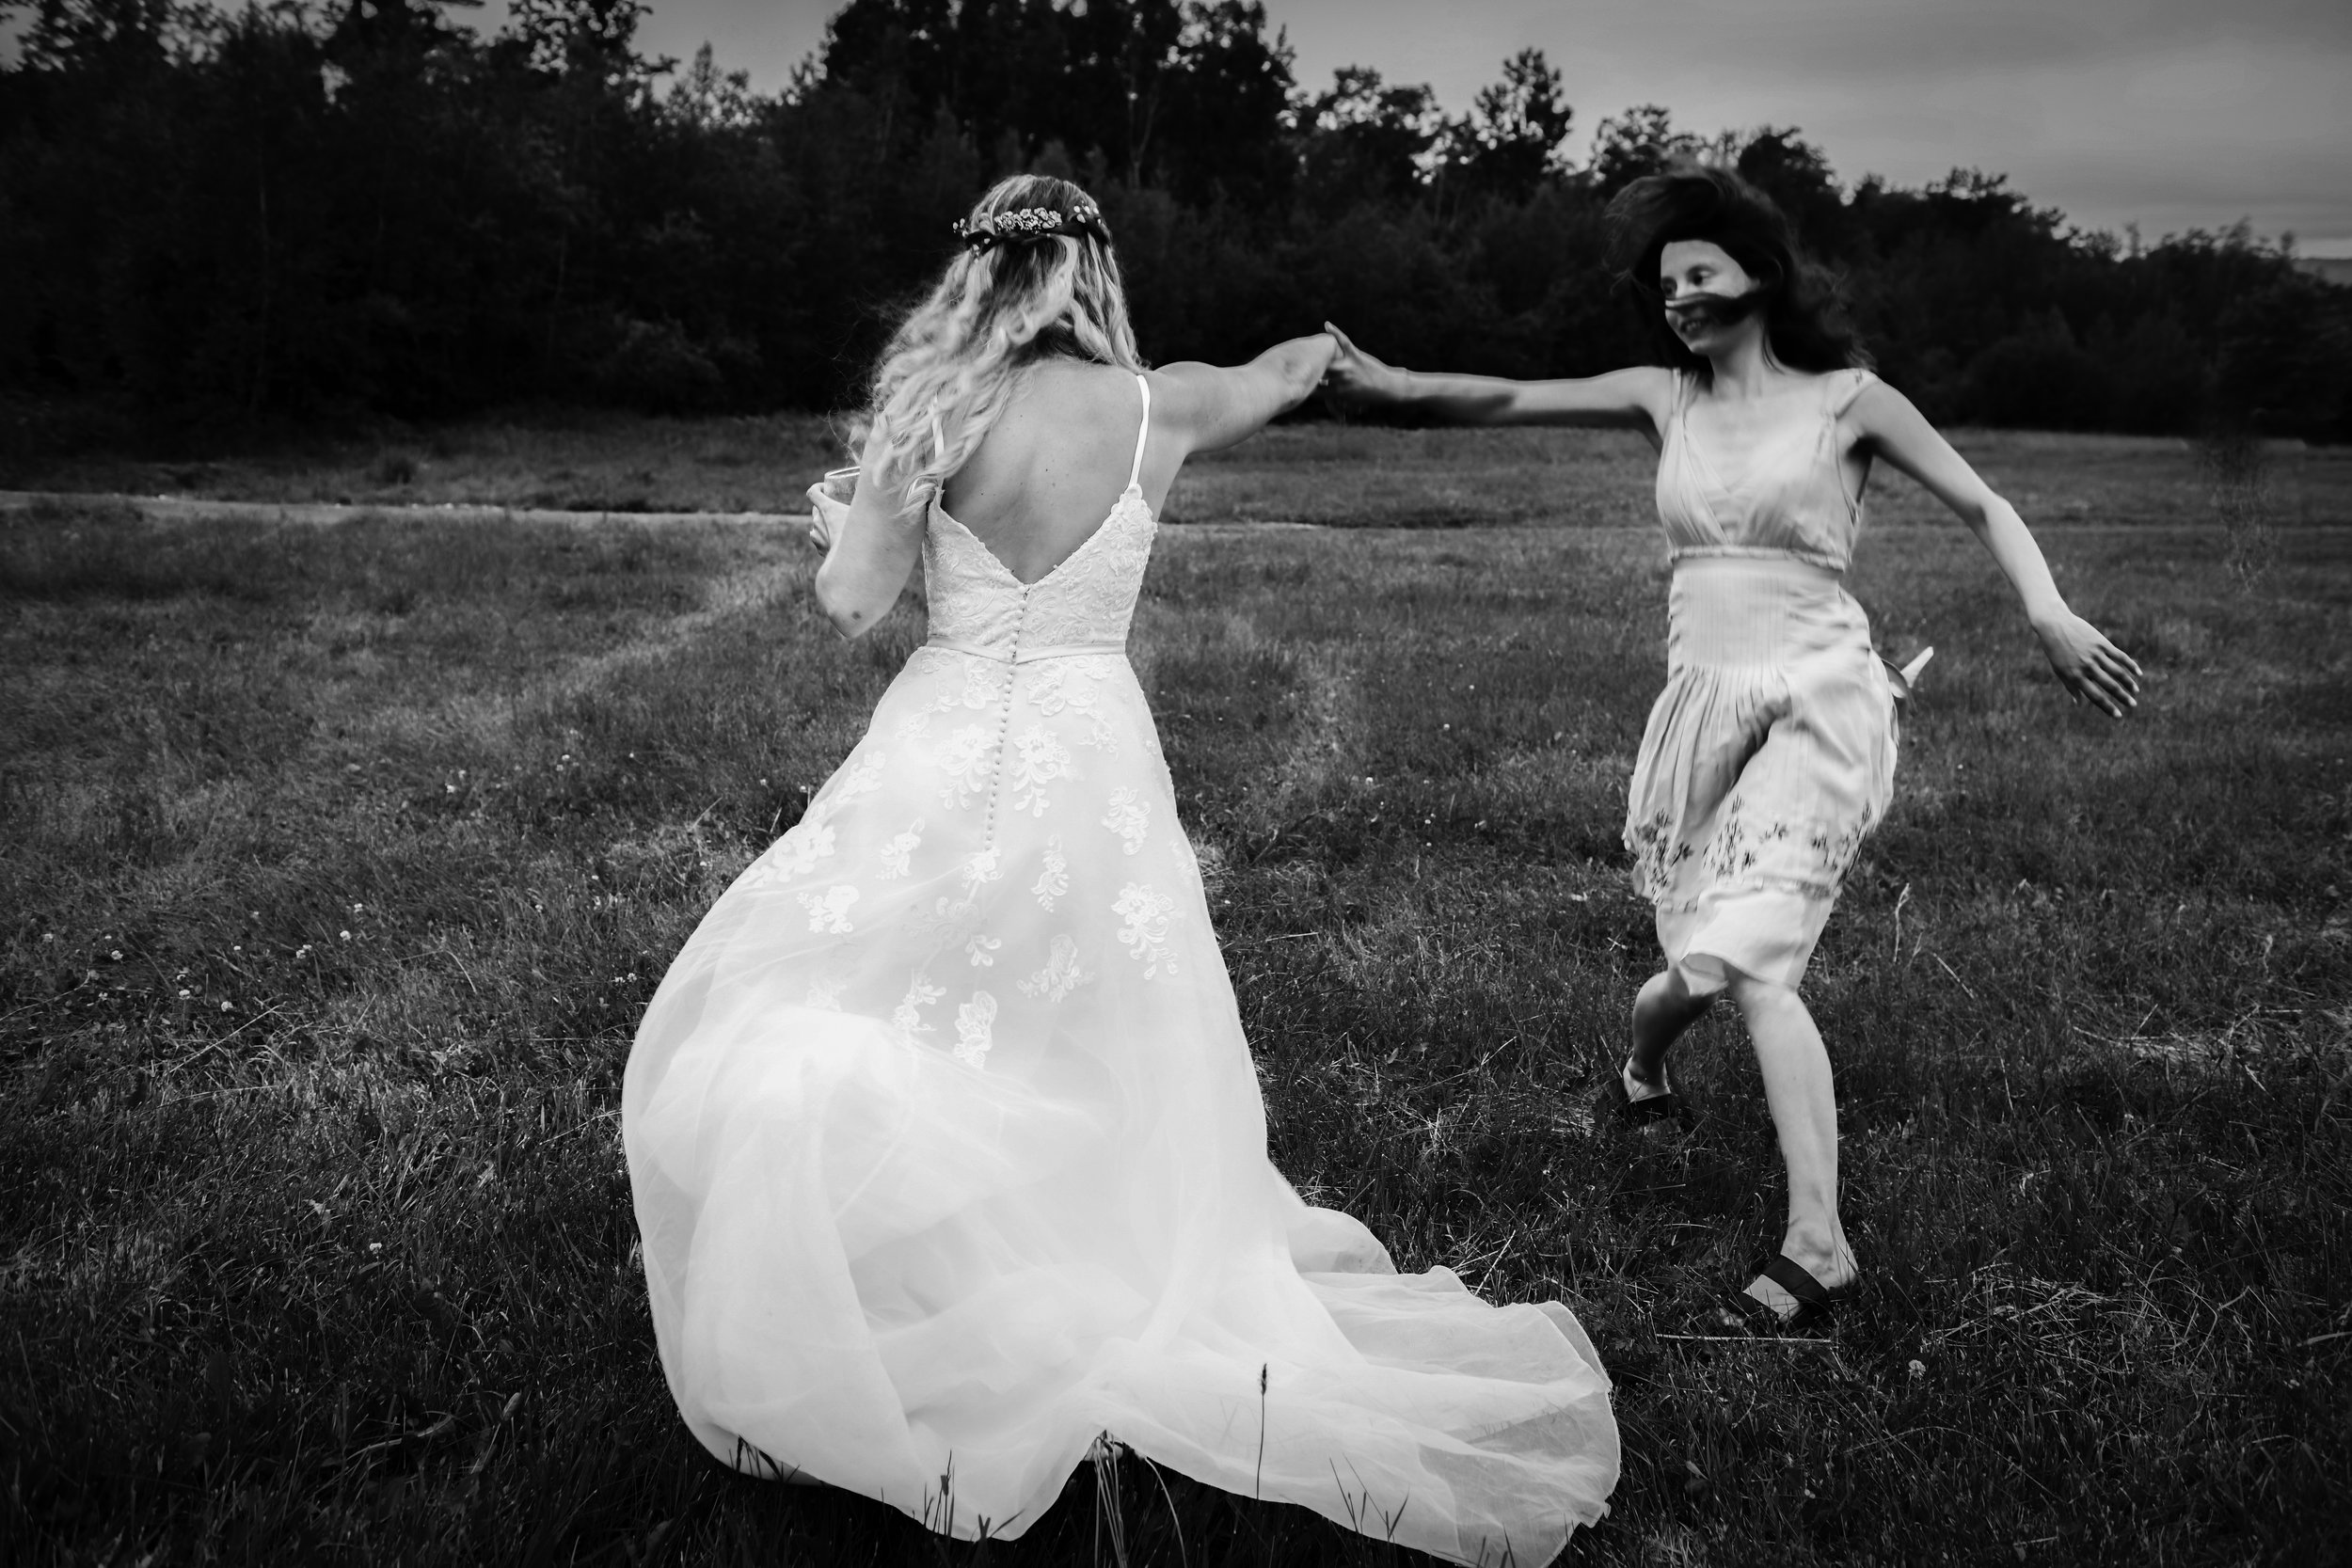 Welcome to Love by Lunasolo, where Artistry and Soul meet wedding photography -